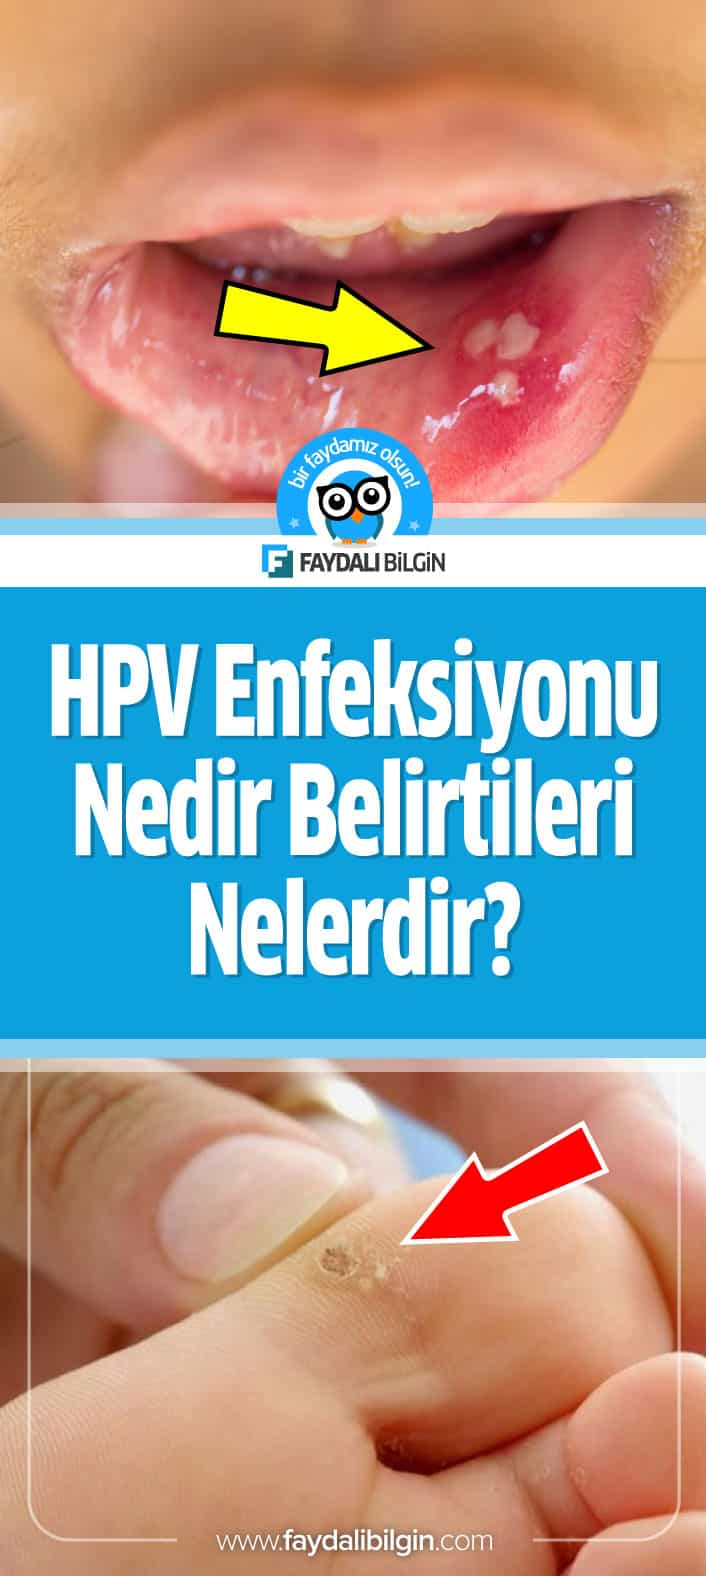 Hpv tedavisi eksi, 15 Best remedii images   Health, Onion for hair, Natural cure for arthritis